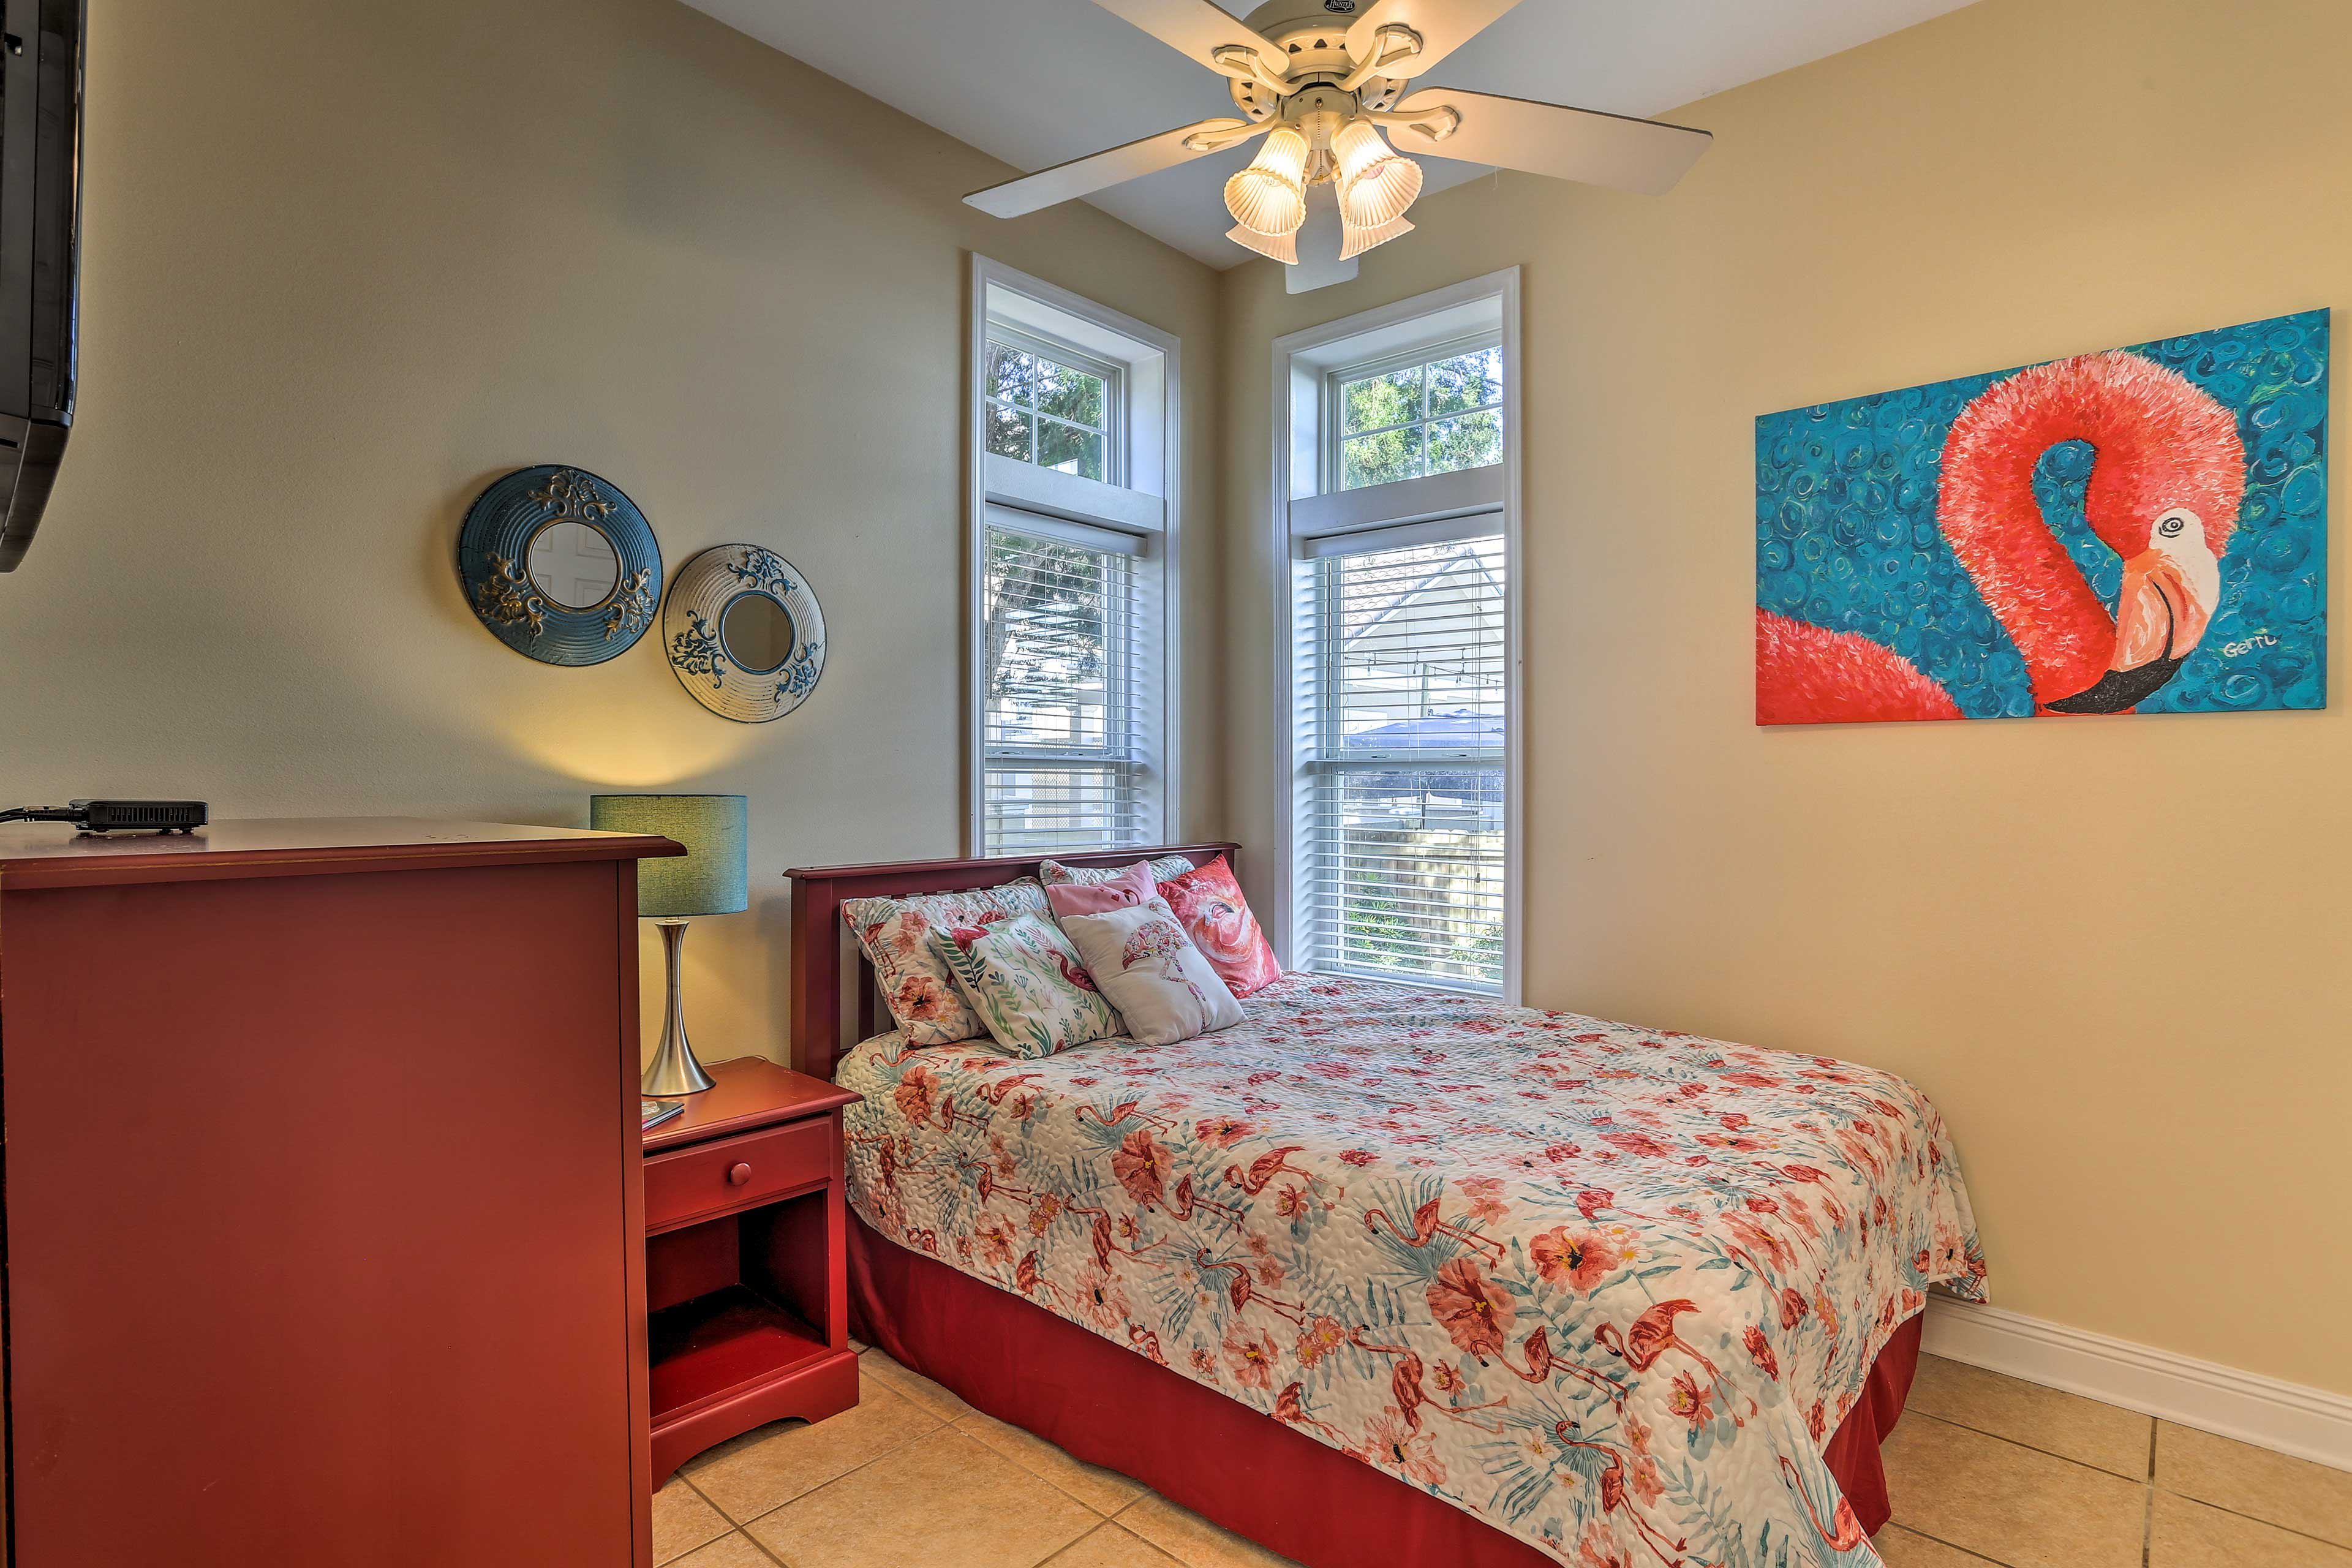 Choose from one of the 4 bedrooms to sleep in during your stay.